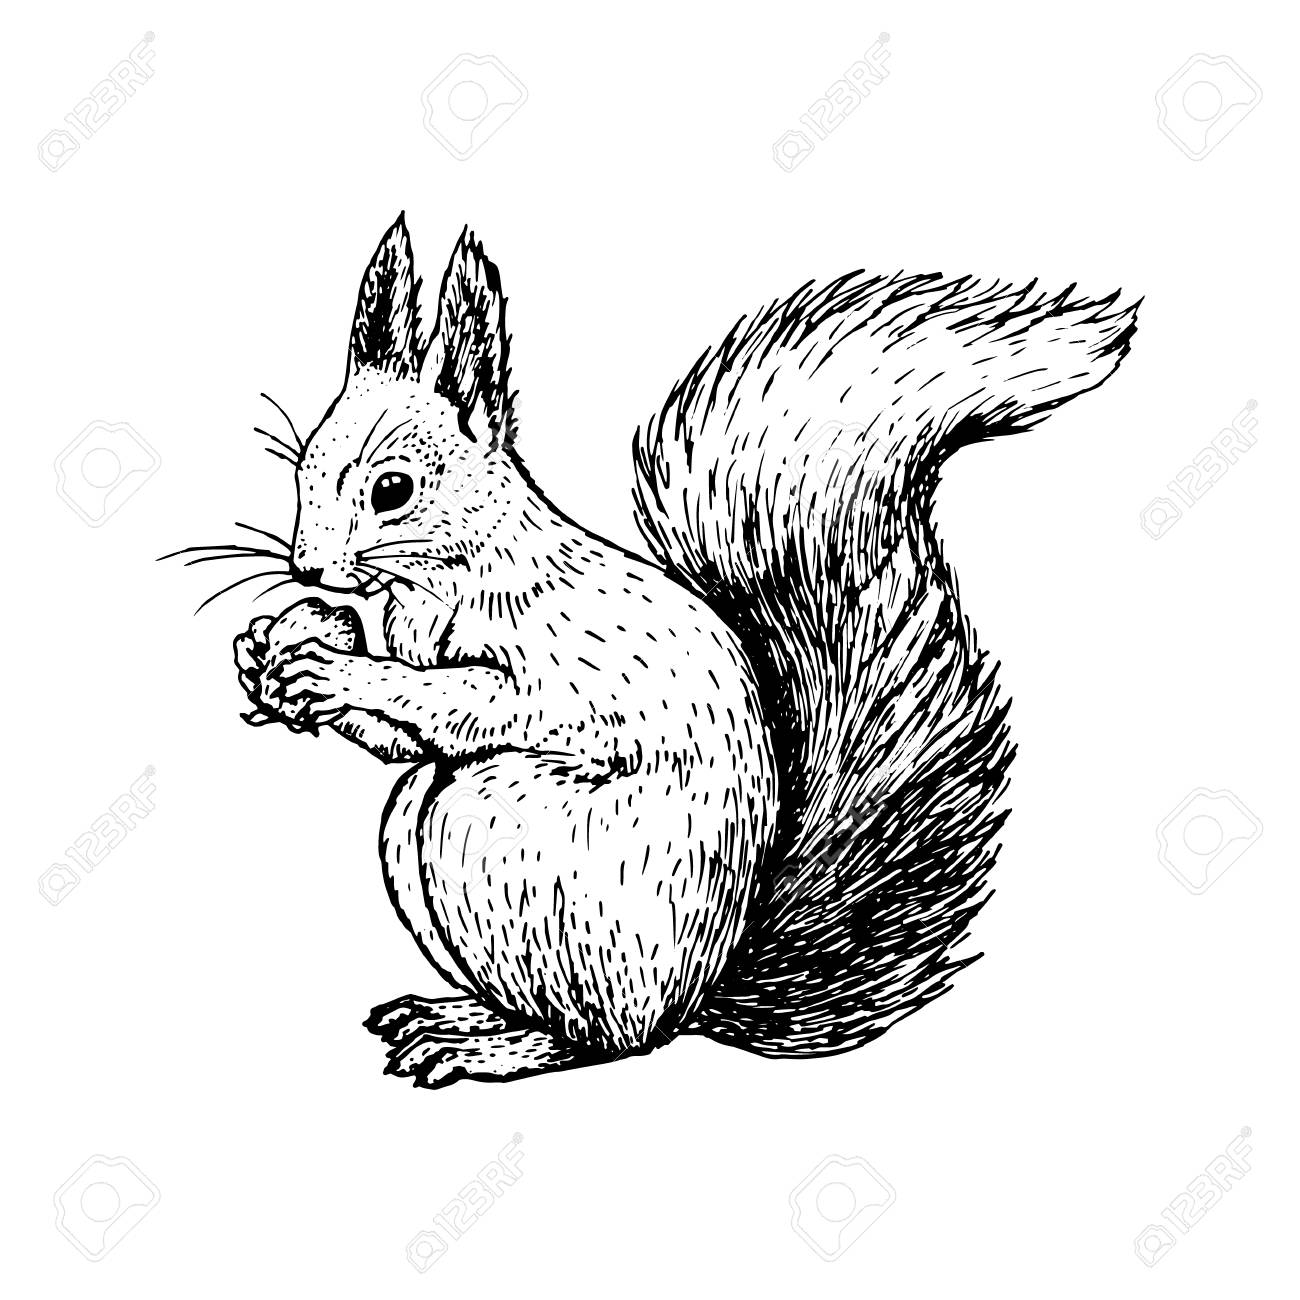 1300x1300 Hand Drawn Squirrel. Retro Realistic Animal Isolated. Vintage